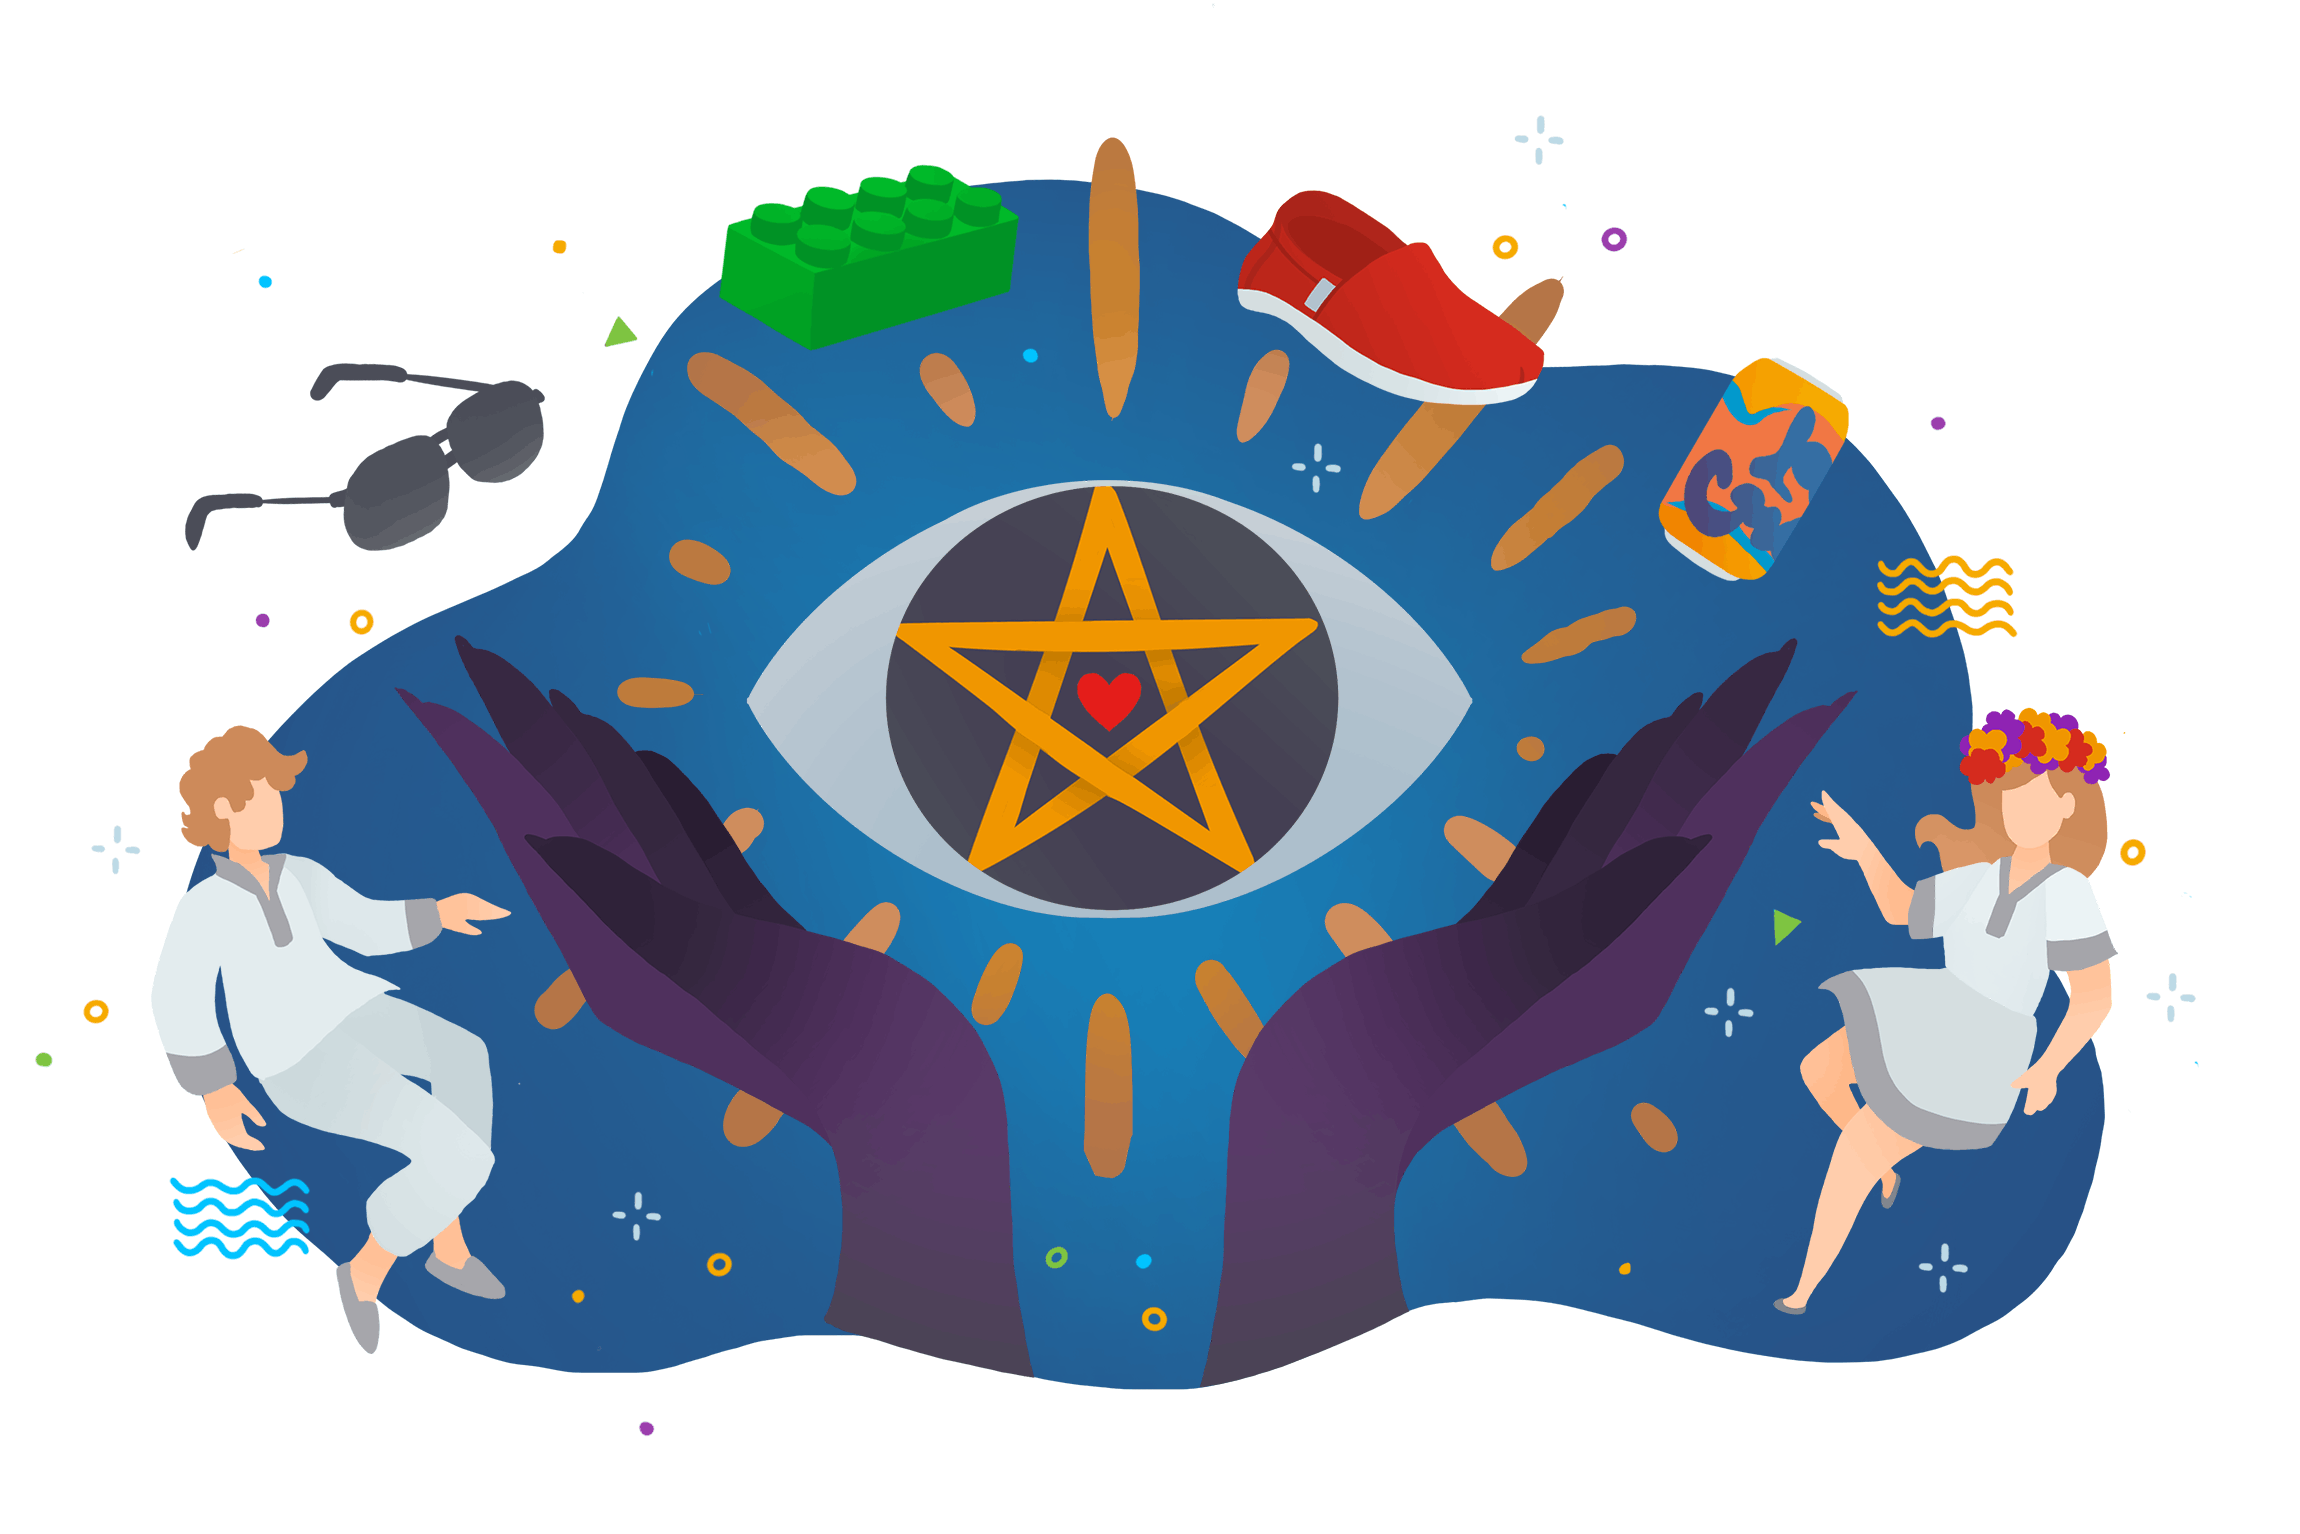 A colourful illustration of two hands revealing an illuminated eye while people and inanimate objects float around near by.